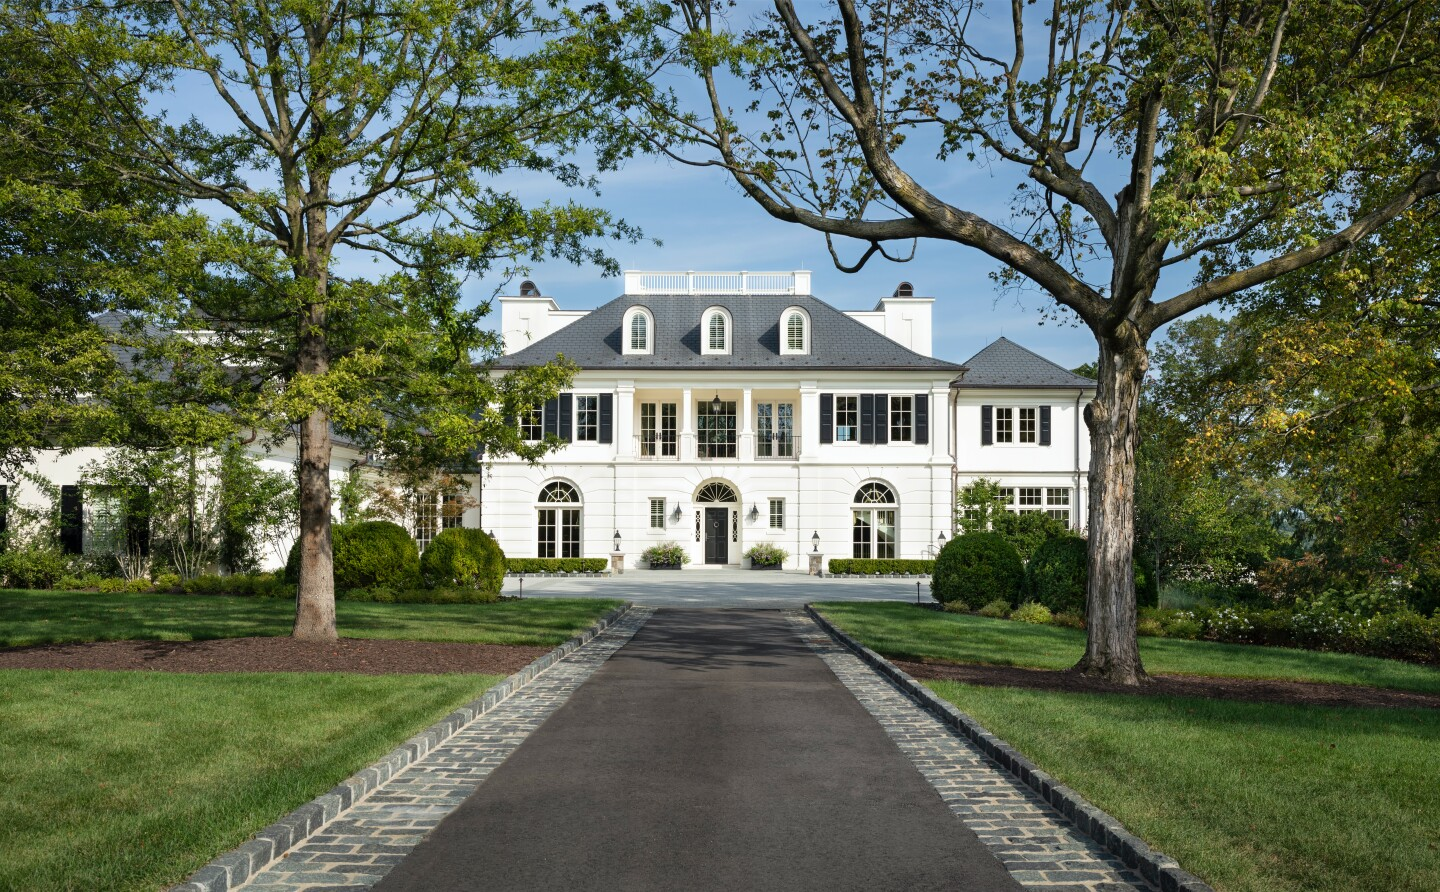 The 16.5-acre estate on the Potomac River centers on a 16,000-square-foot Federal-style mansion built in 2018.